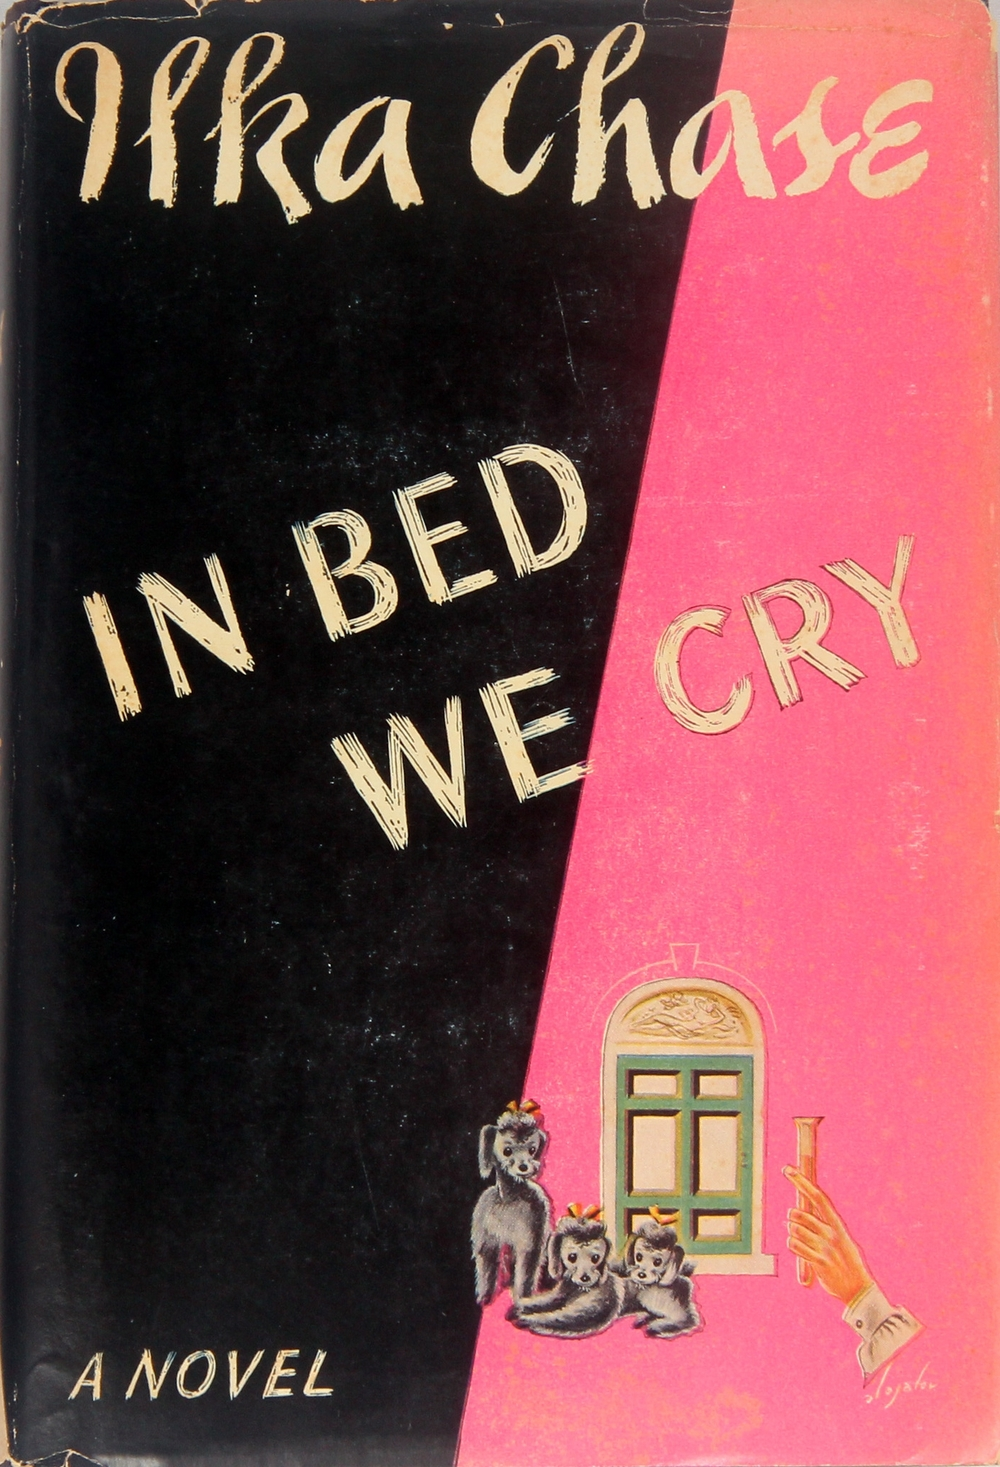 IN BED WE CRY, SIGNED TO GEORGE CUKOR BY ILKA CHASE. First edition, 1943 $250 Dust jacket illustration by Constantin Alajalov.